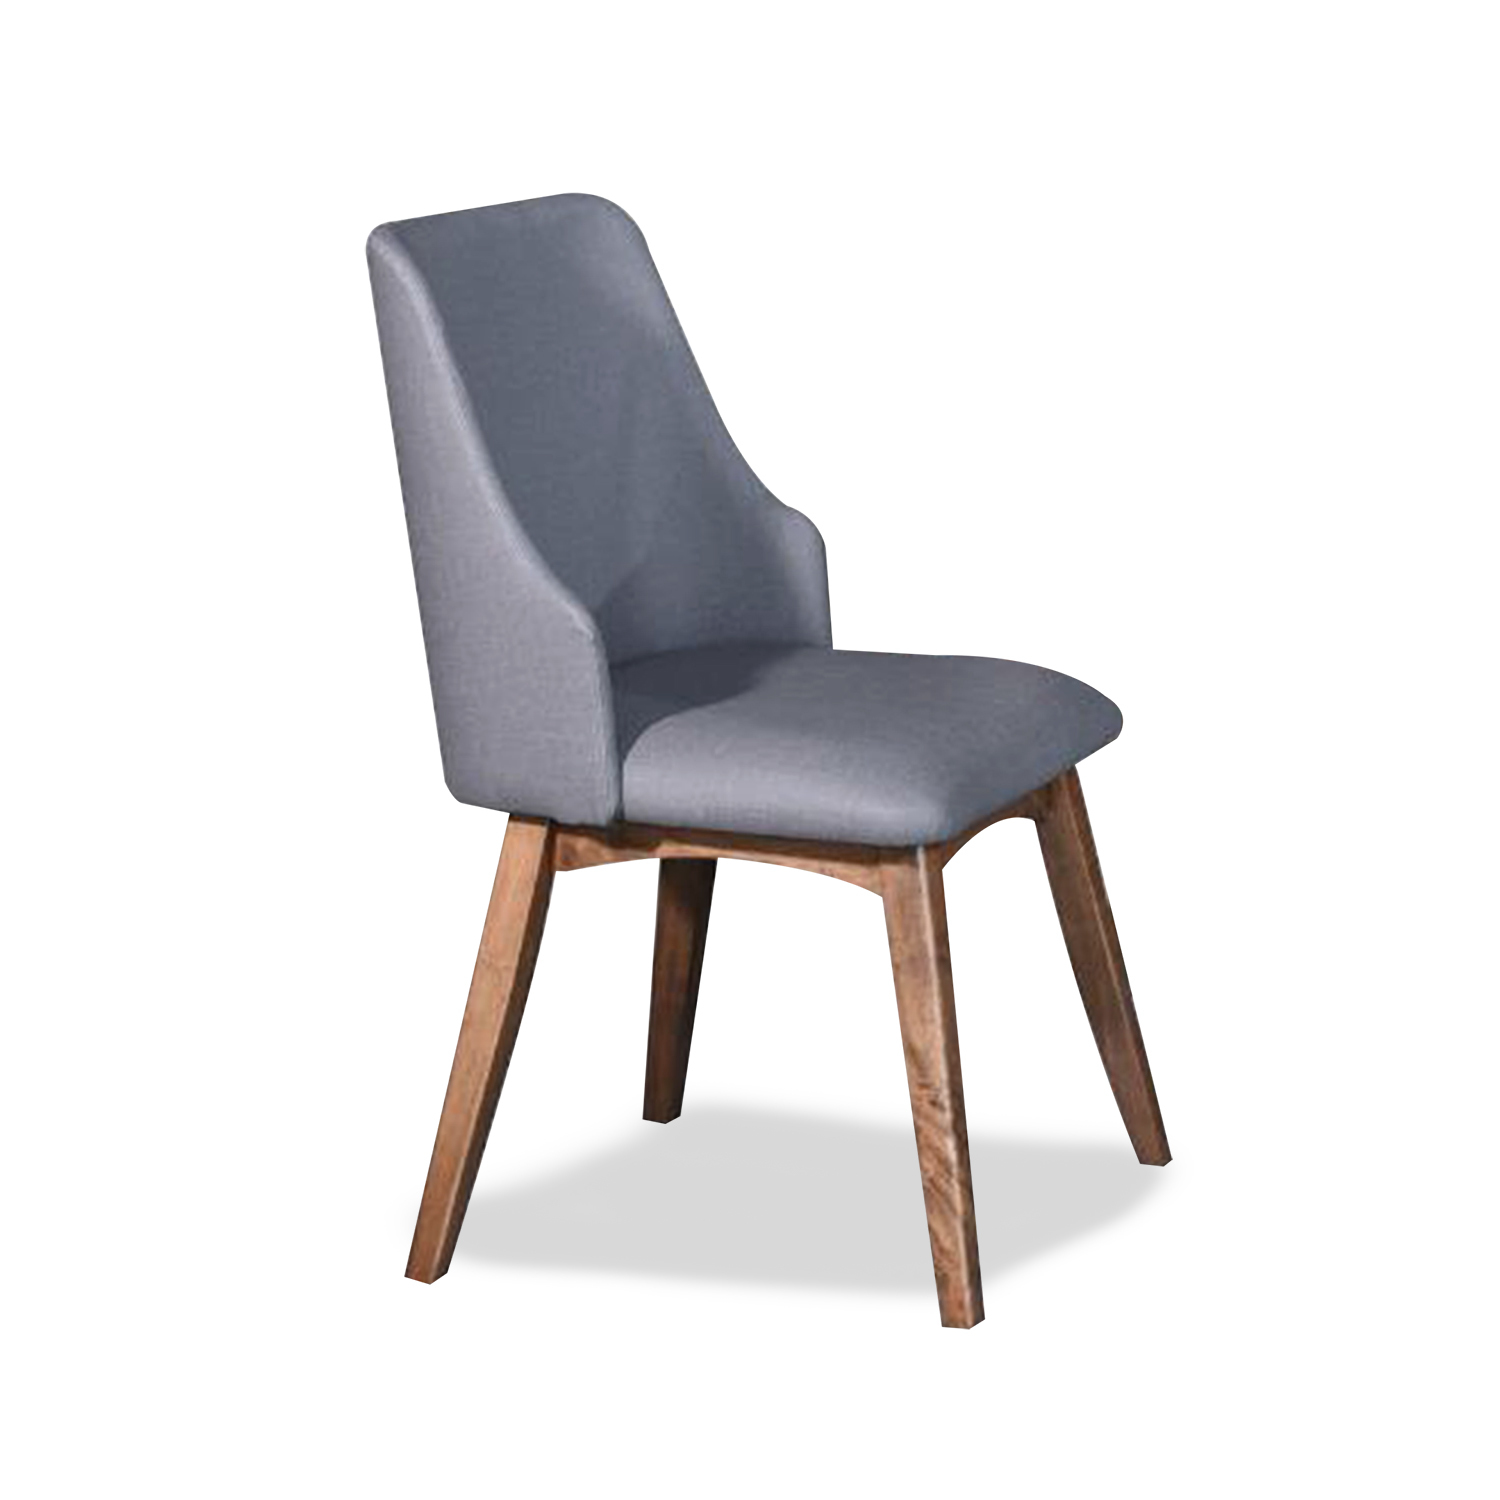 Dining Chair MJ14